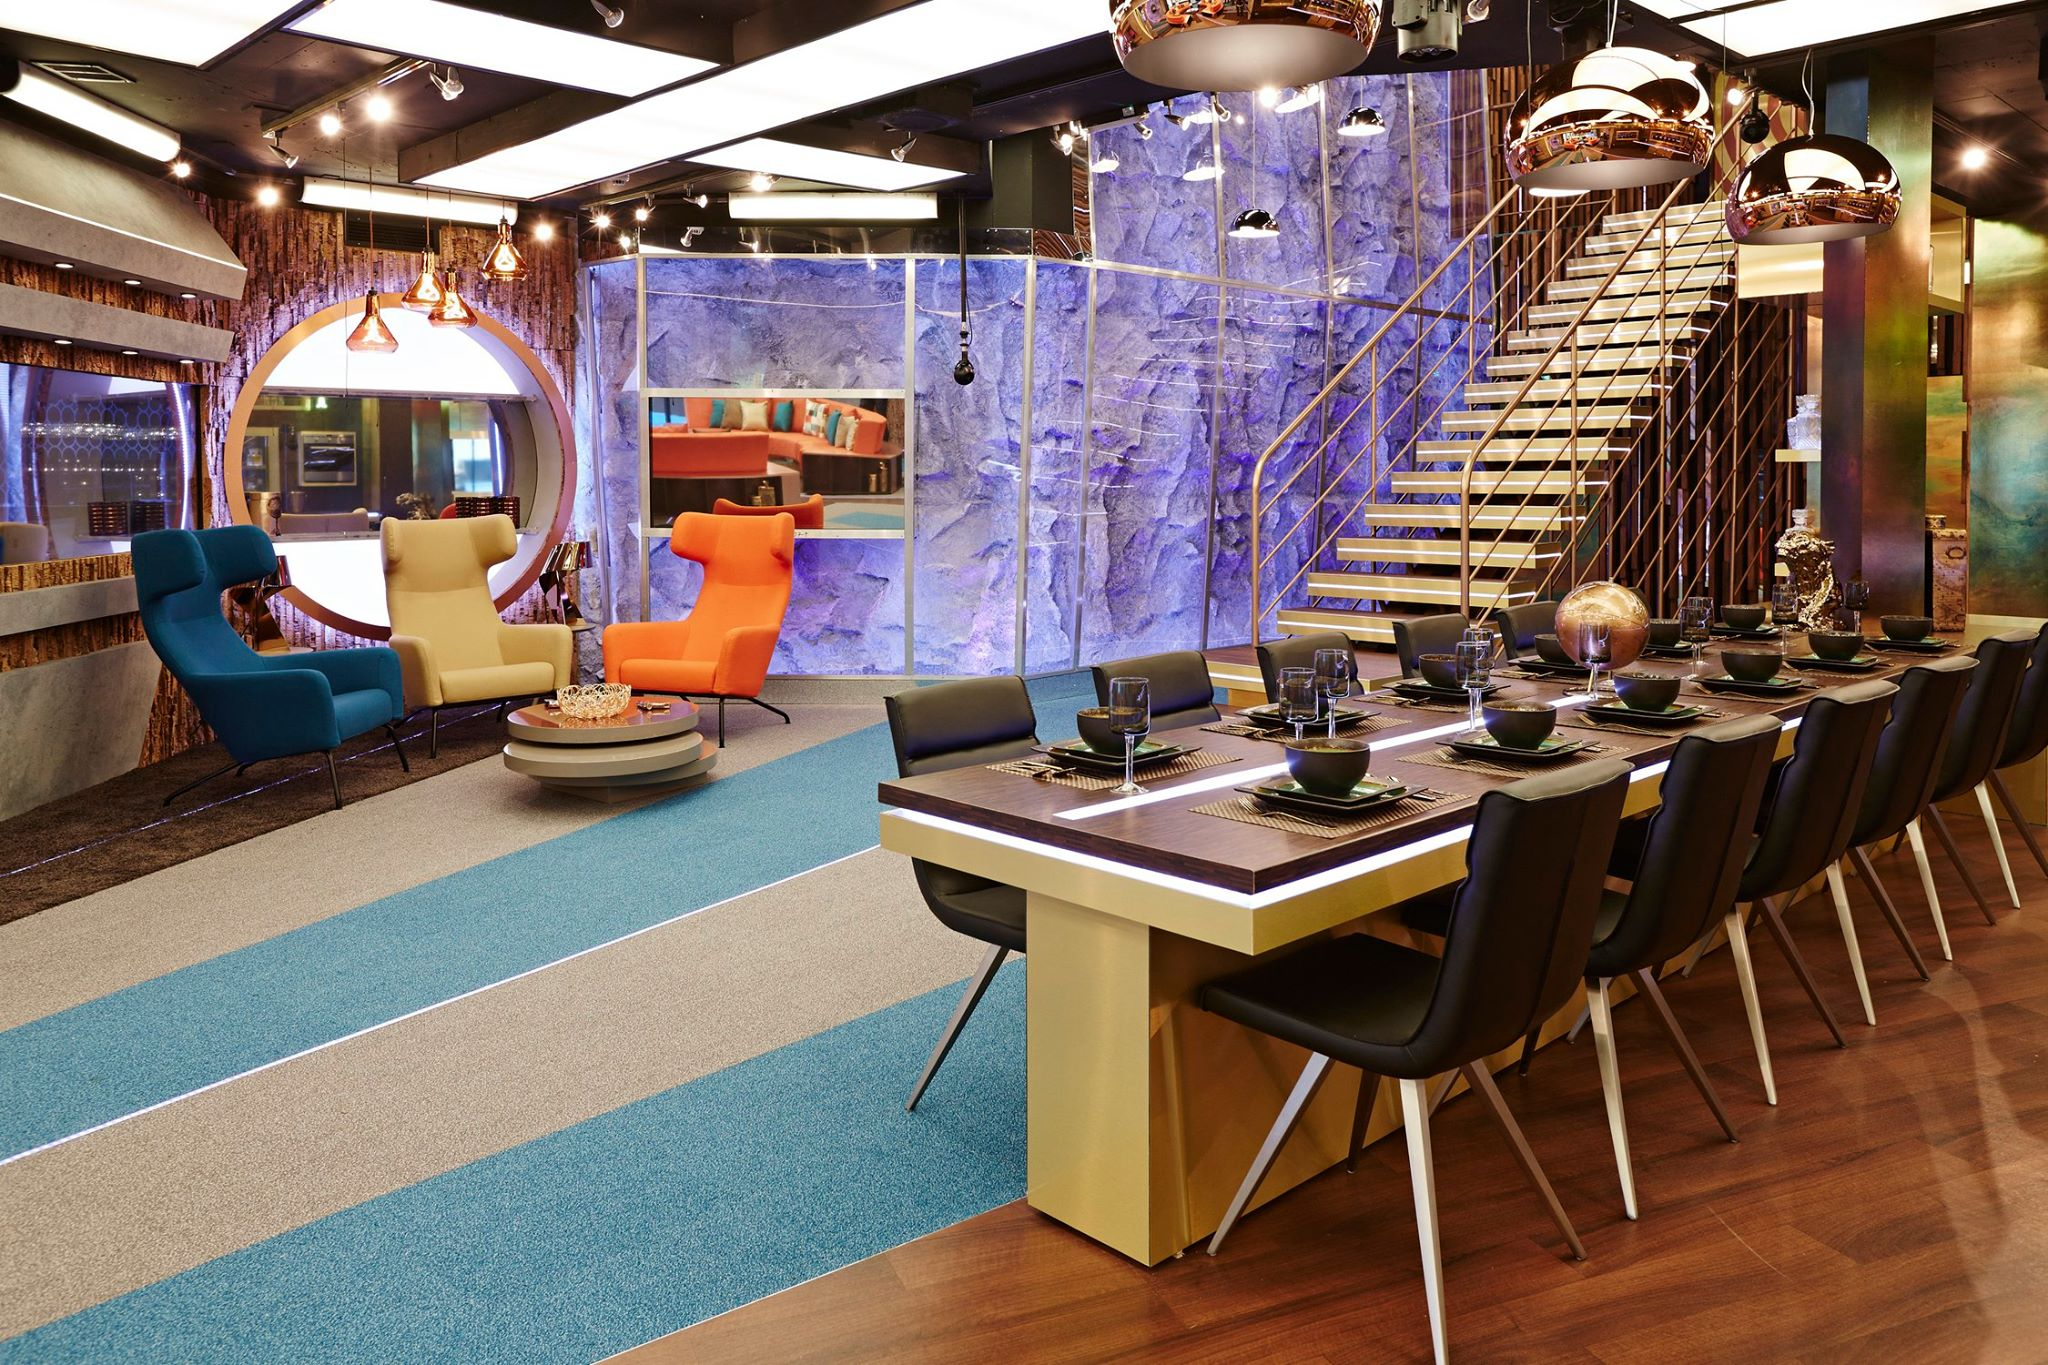 Day -7: Does Big Brother House hold connections to previous houses?